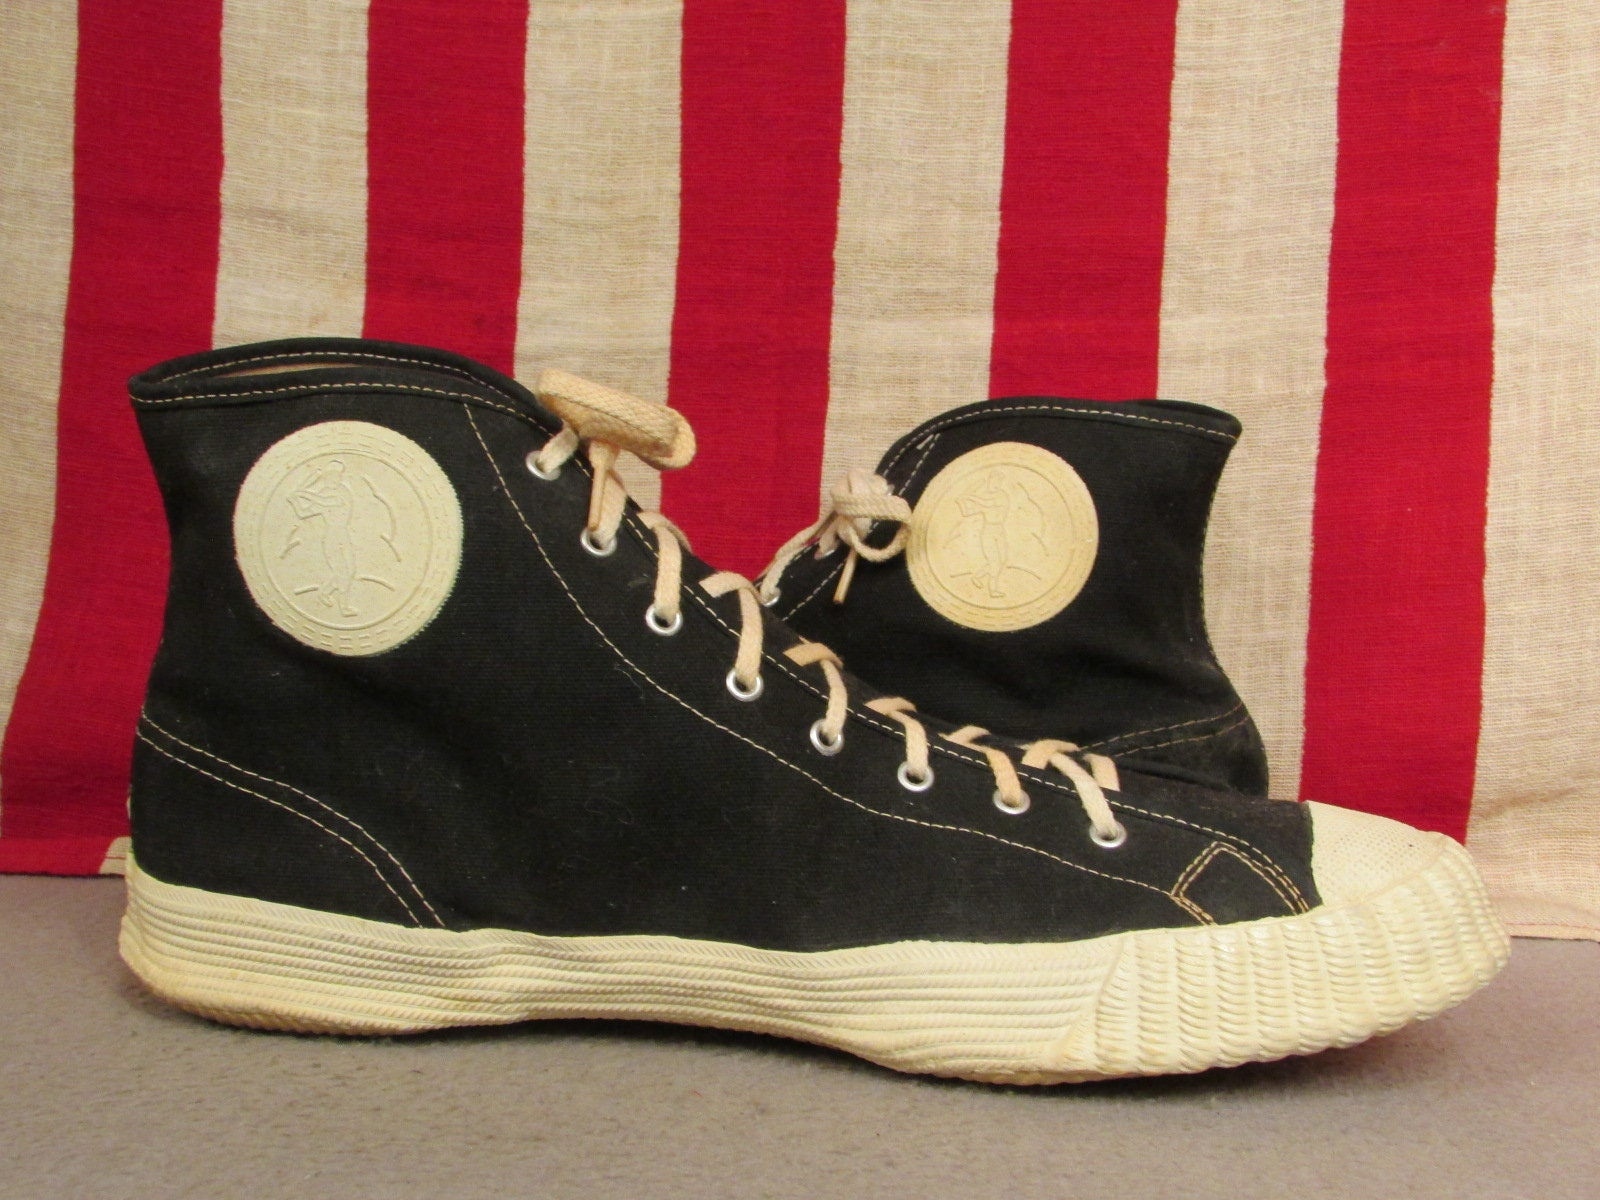 f0372d97e2061d Vintage bata canvas basketball sneakers high top etsy jpg 1600x1200 1950s  basketball shoes